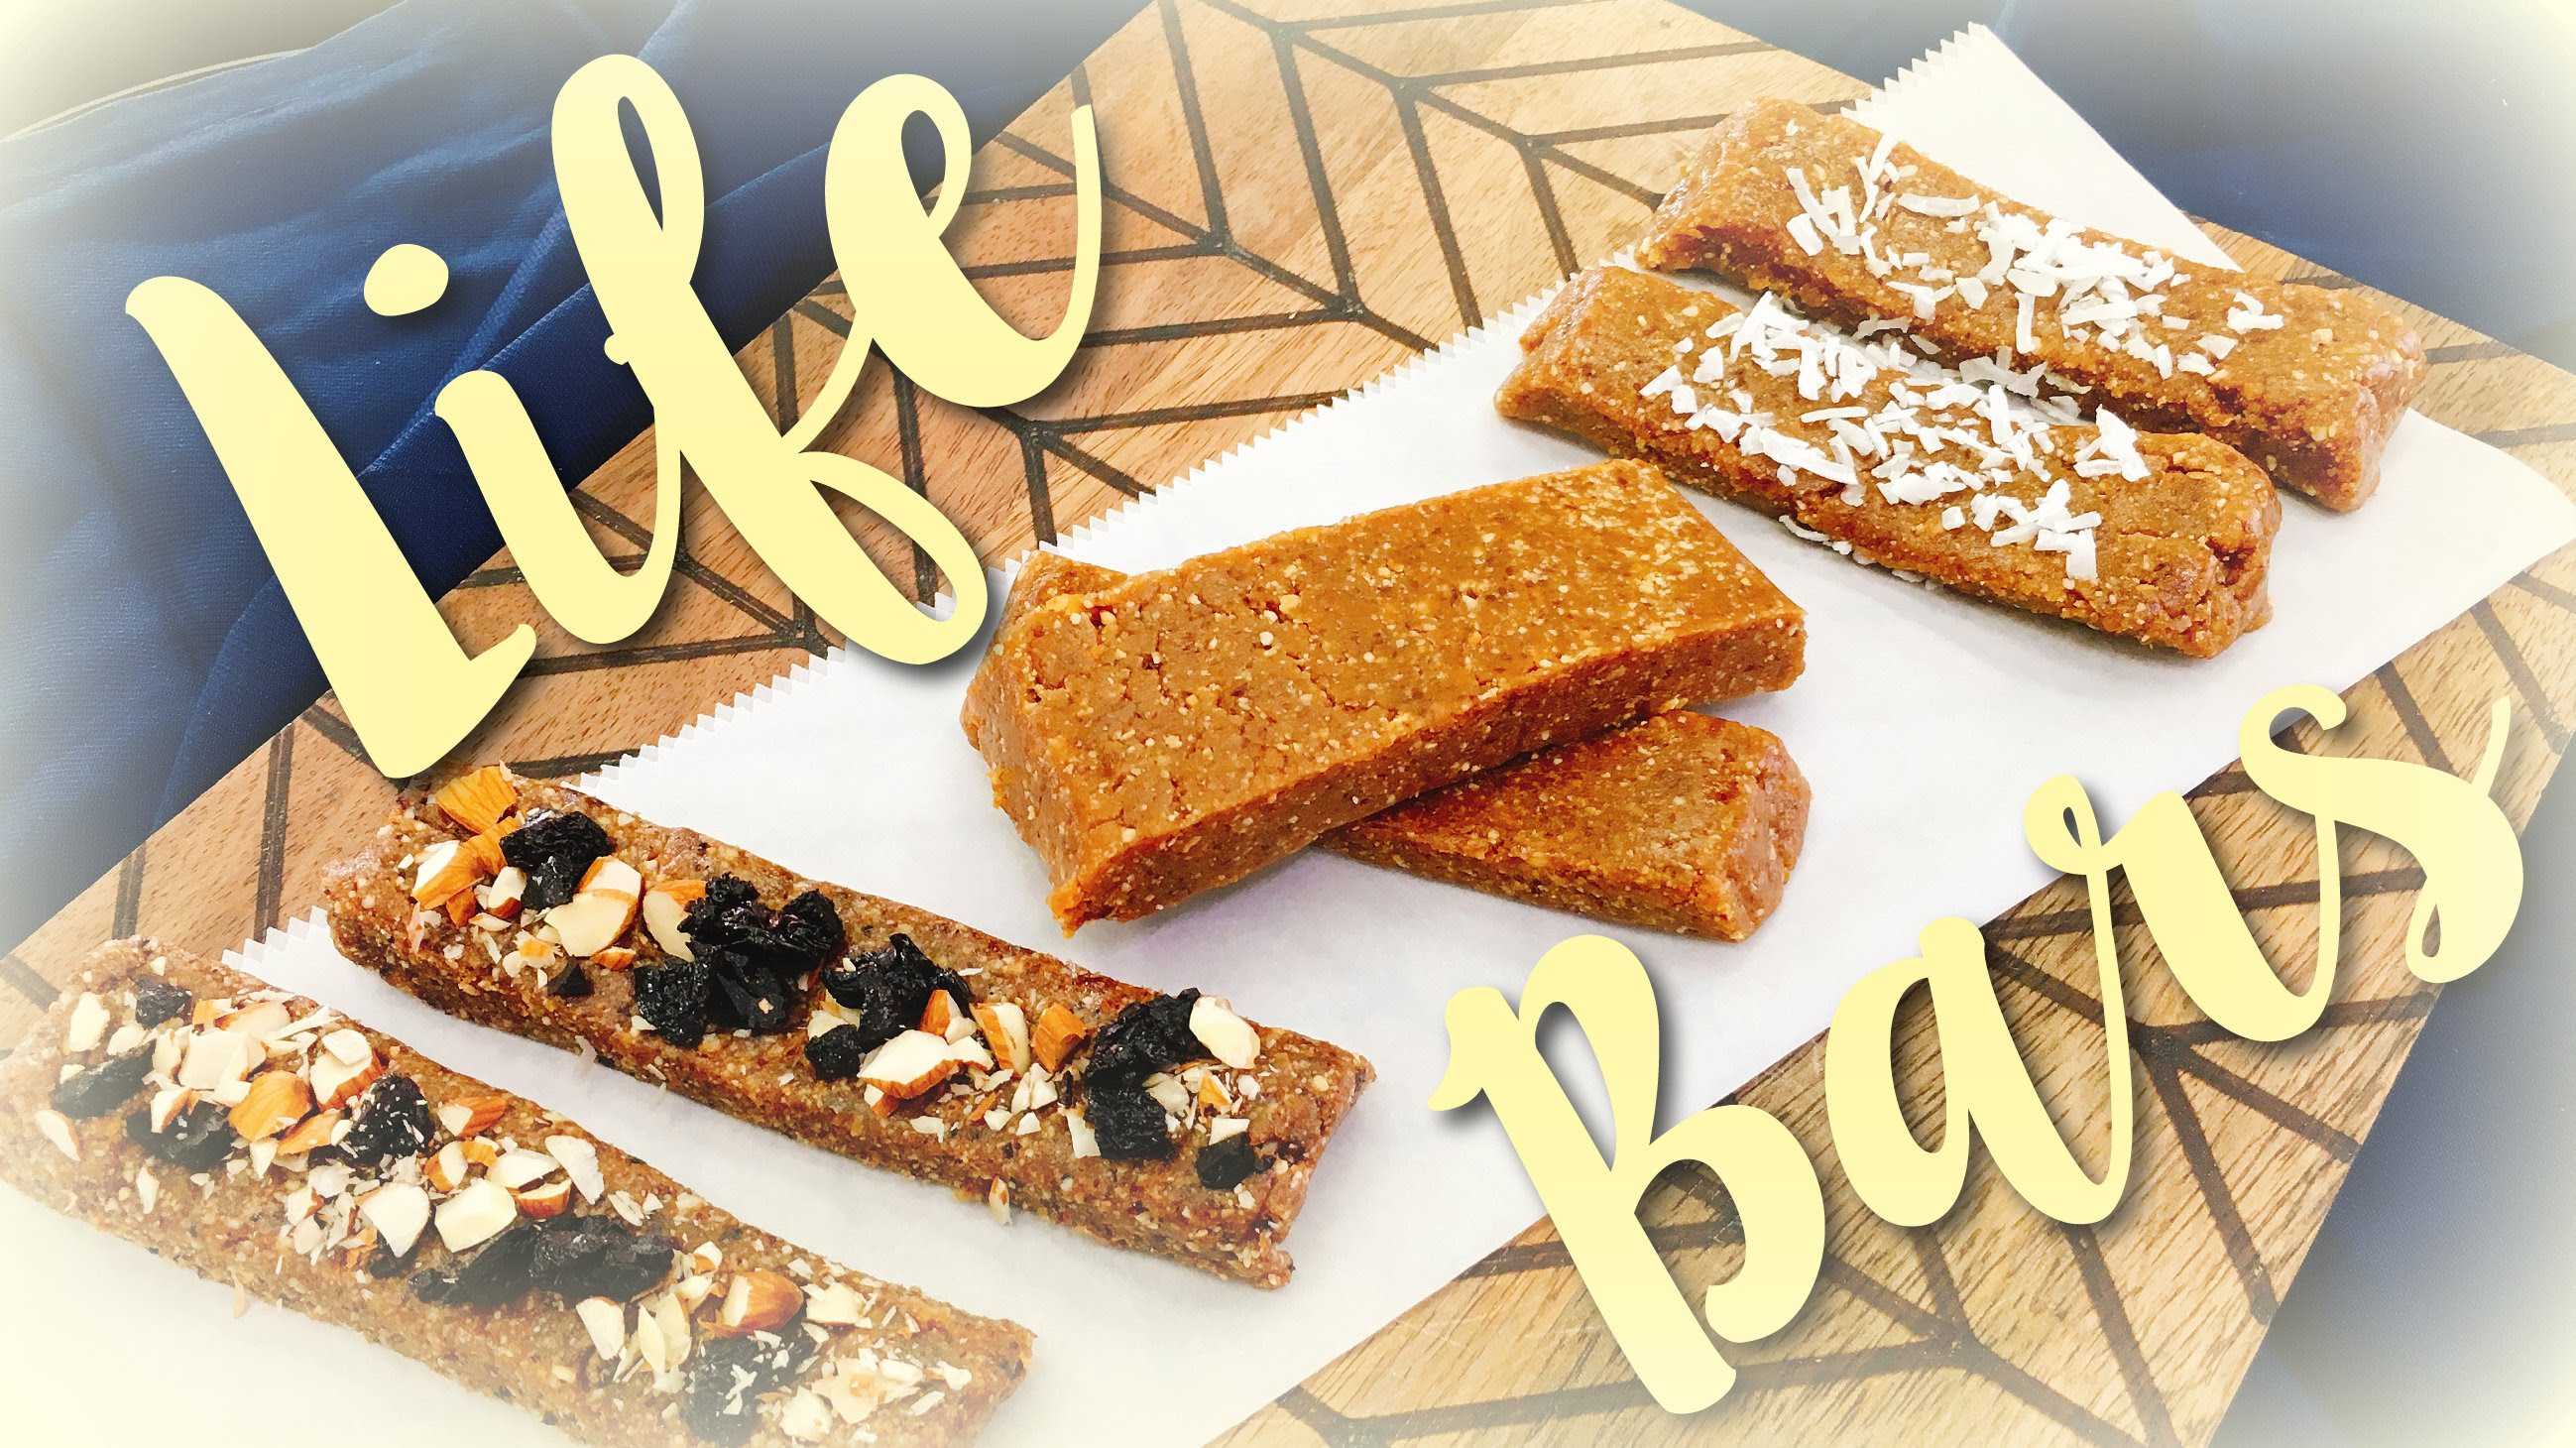 ☼ LIFE BARS ☼ How to Make Your Own Nutrition Bars | CHEAP CLEAN EATS